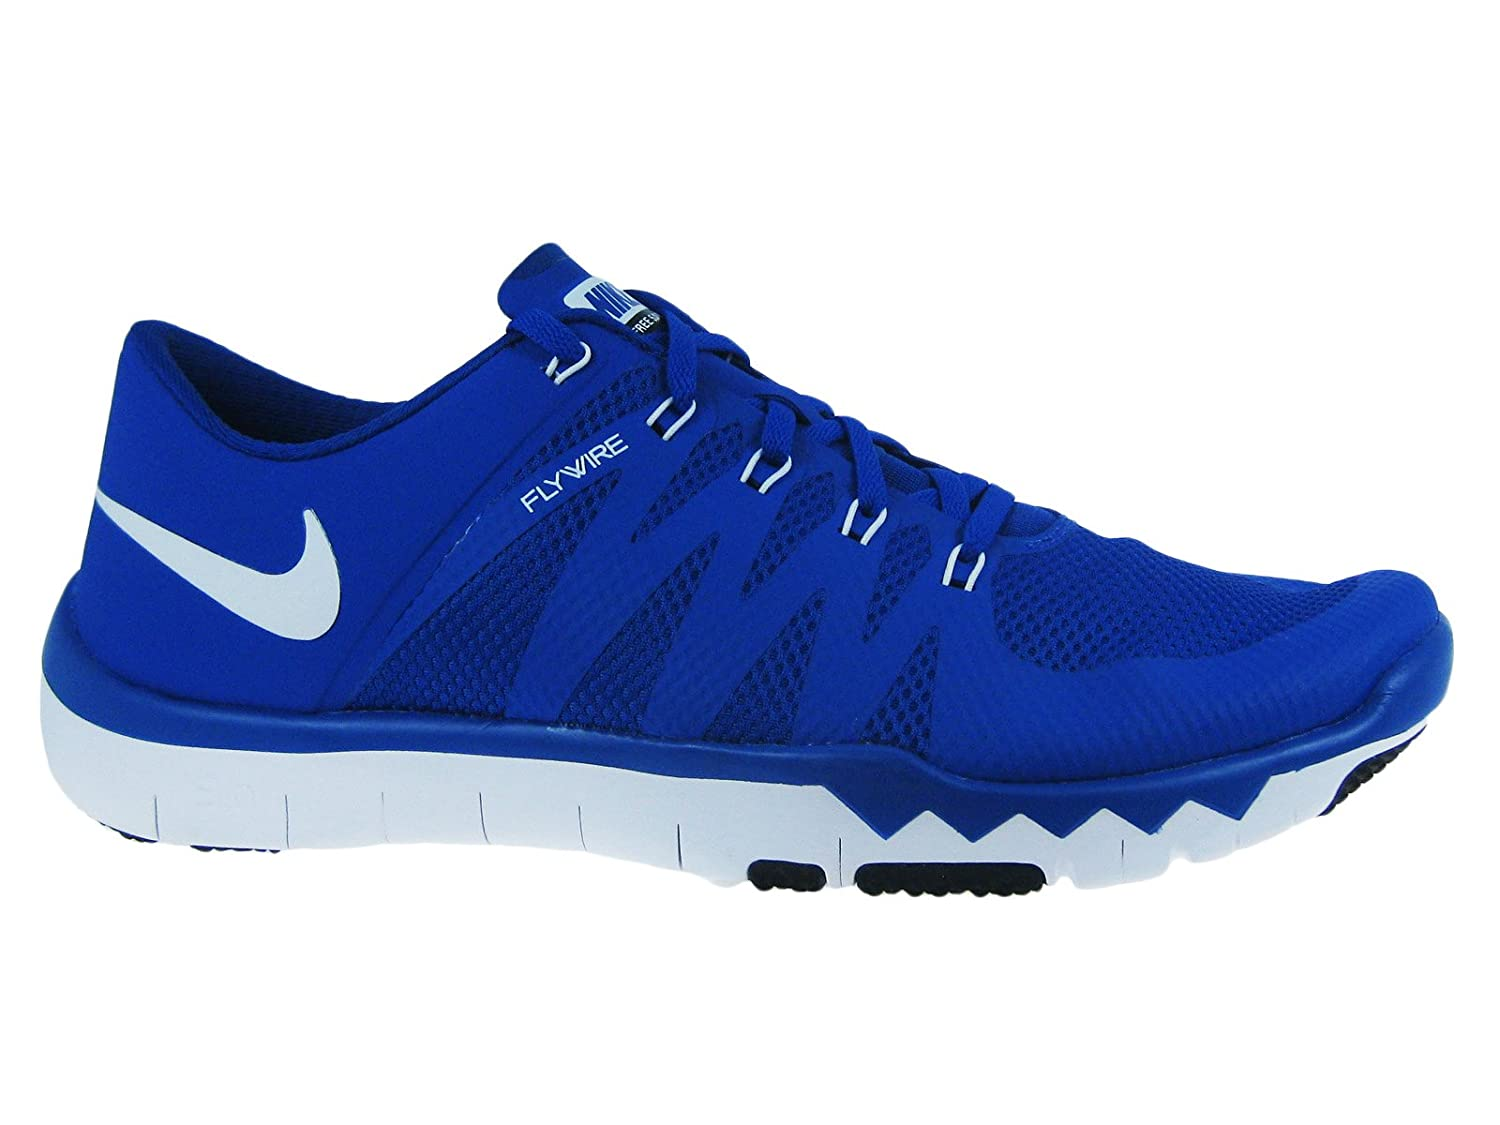 Images for Nike Mens Free Trainer 5.0 v6 Game Royal  White  Black Mesh  Cross-Trainers Shoes 8 M US